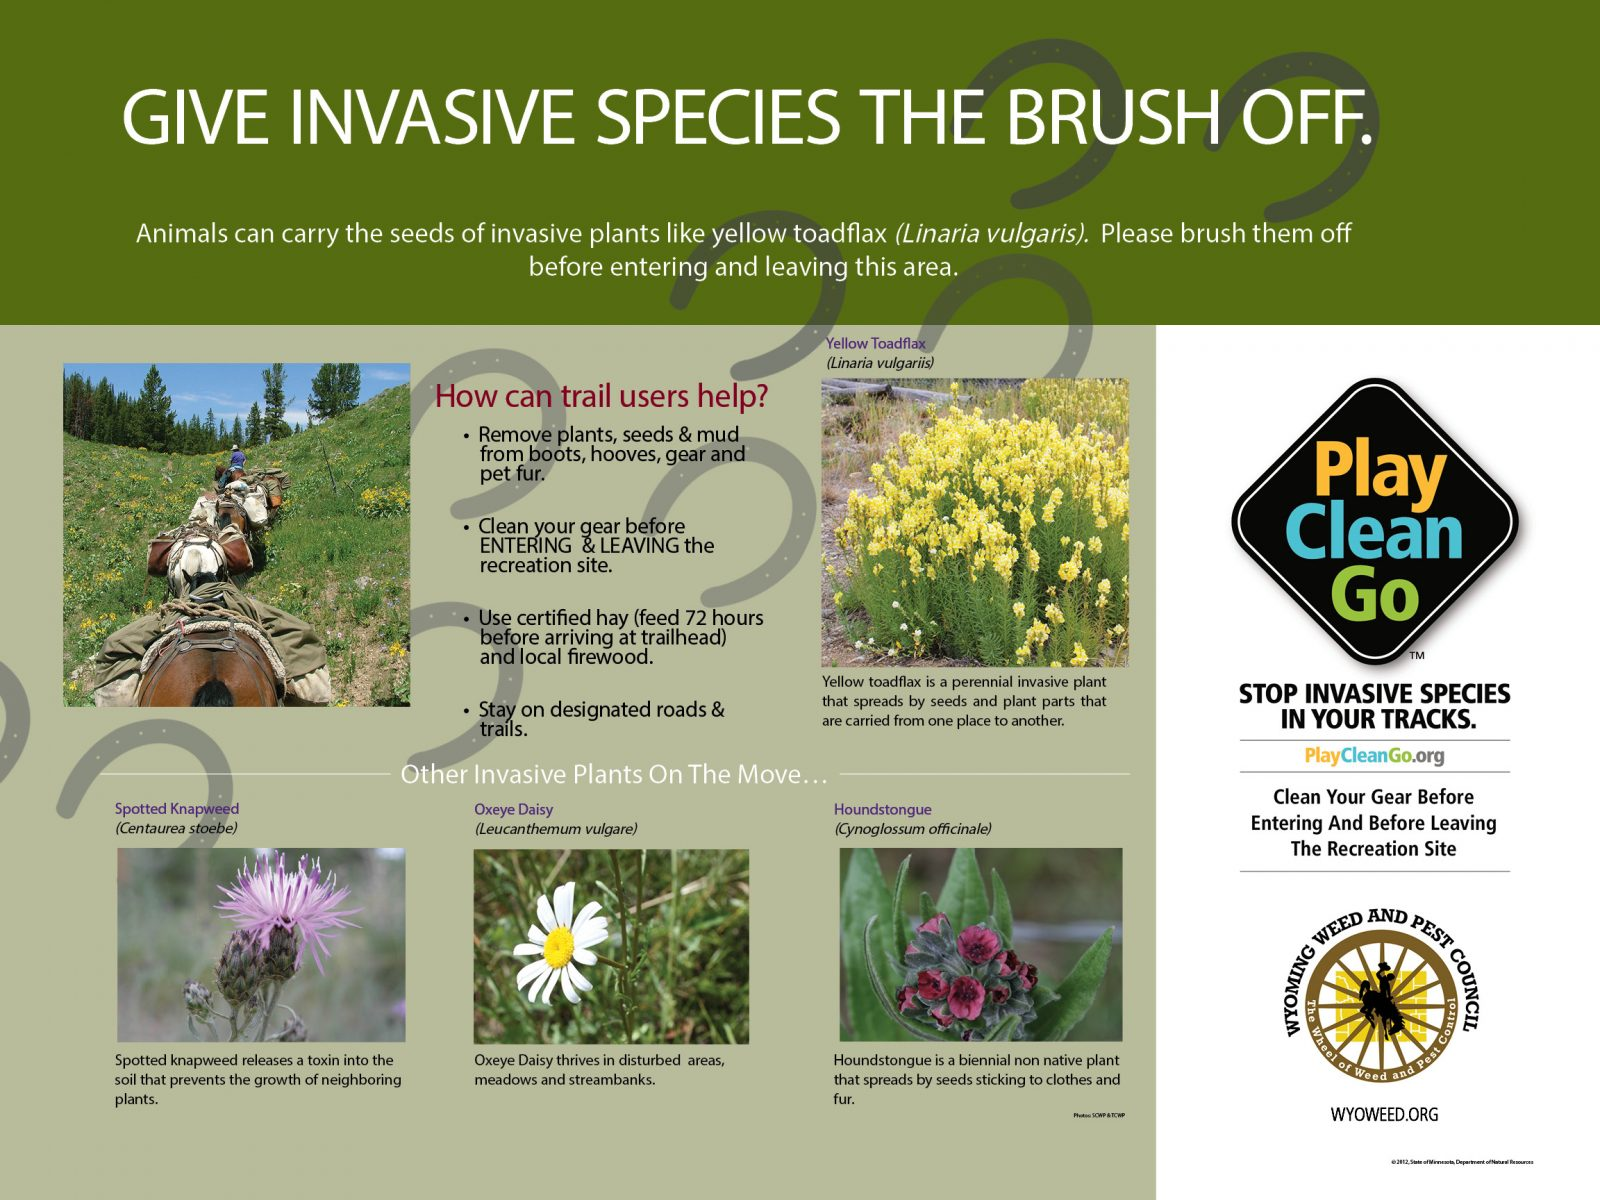 PCG Boot Brush Trail Poster: Horse